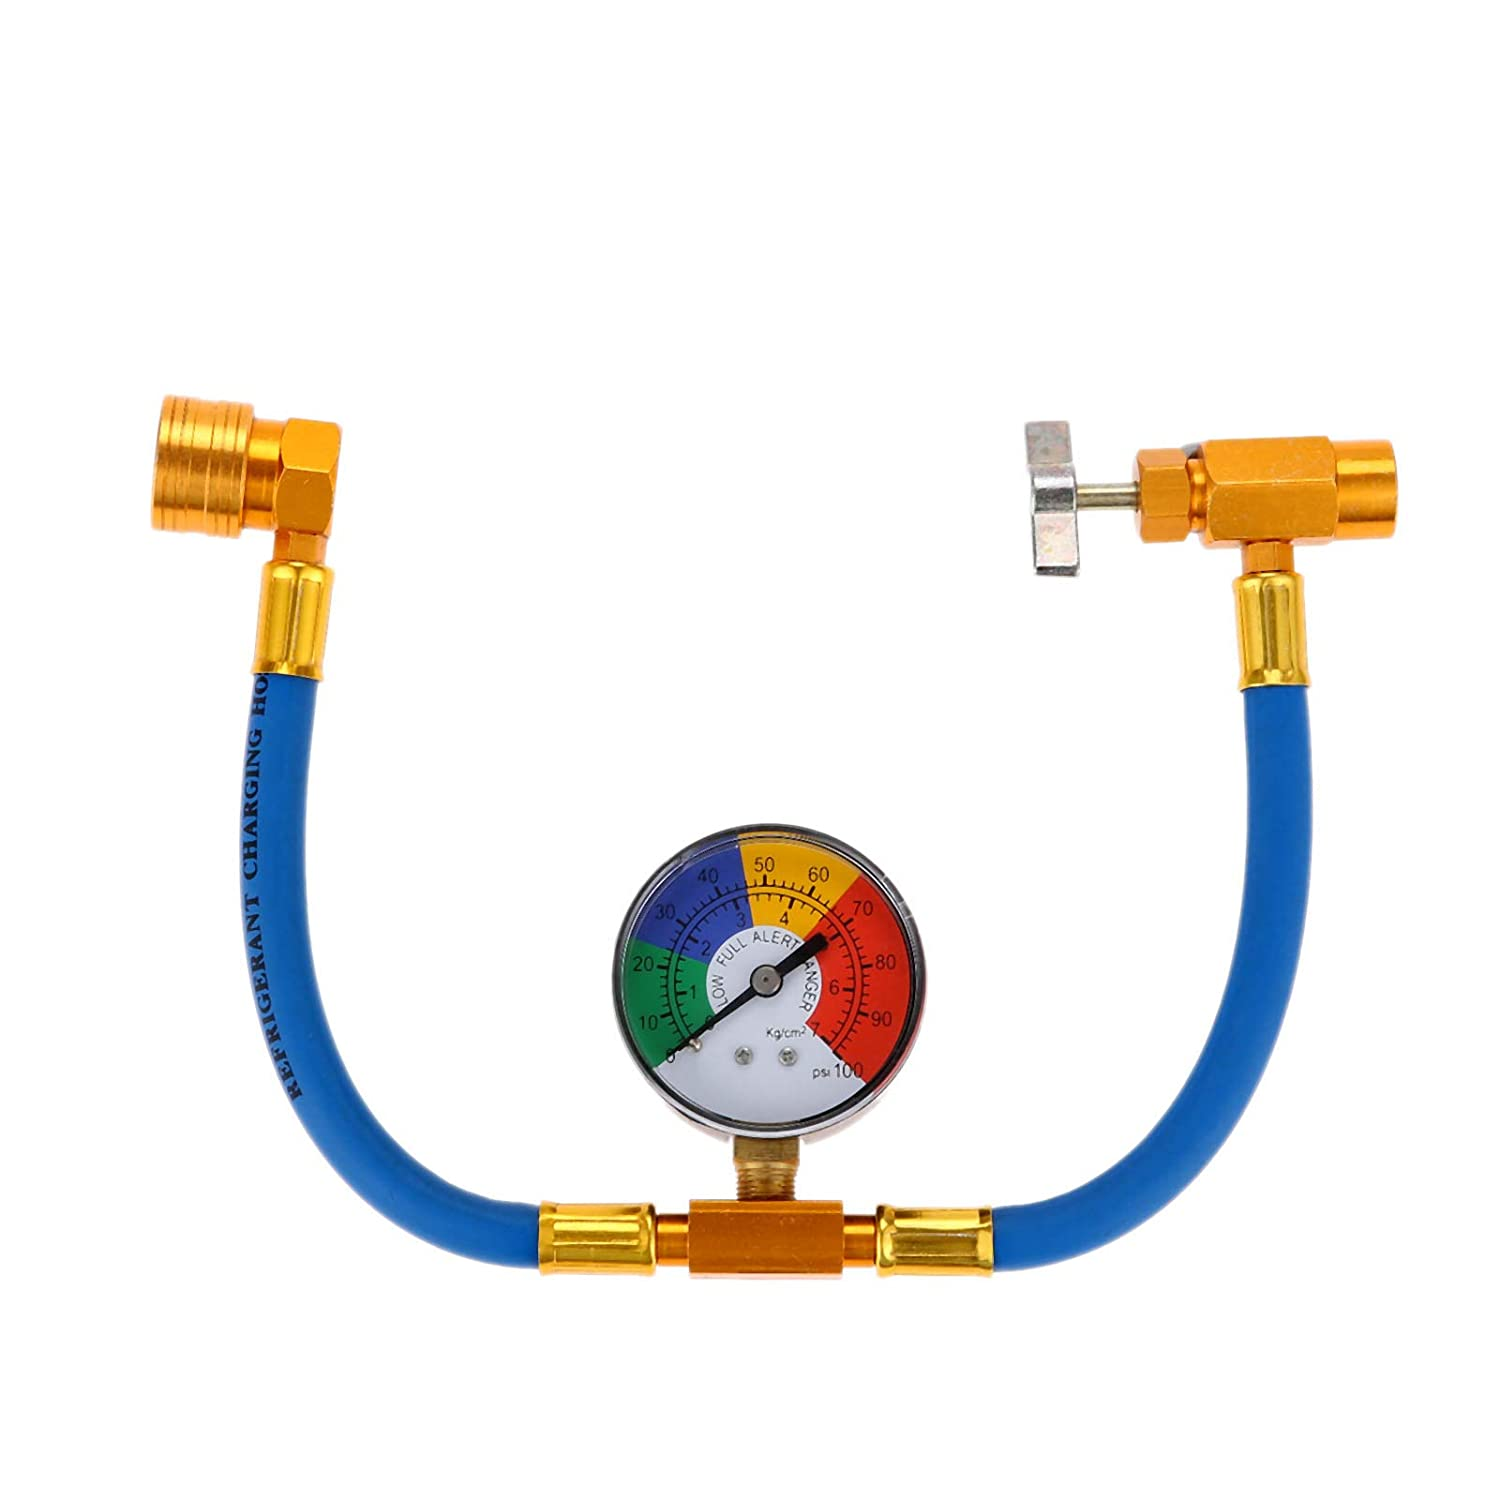 Aupoko R-134A AC Refrigerant Can Opener Tap Dispensing Valve 1/2 Acme Thread Brass (R134A Recharge Hose/w Gauge)